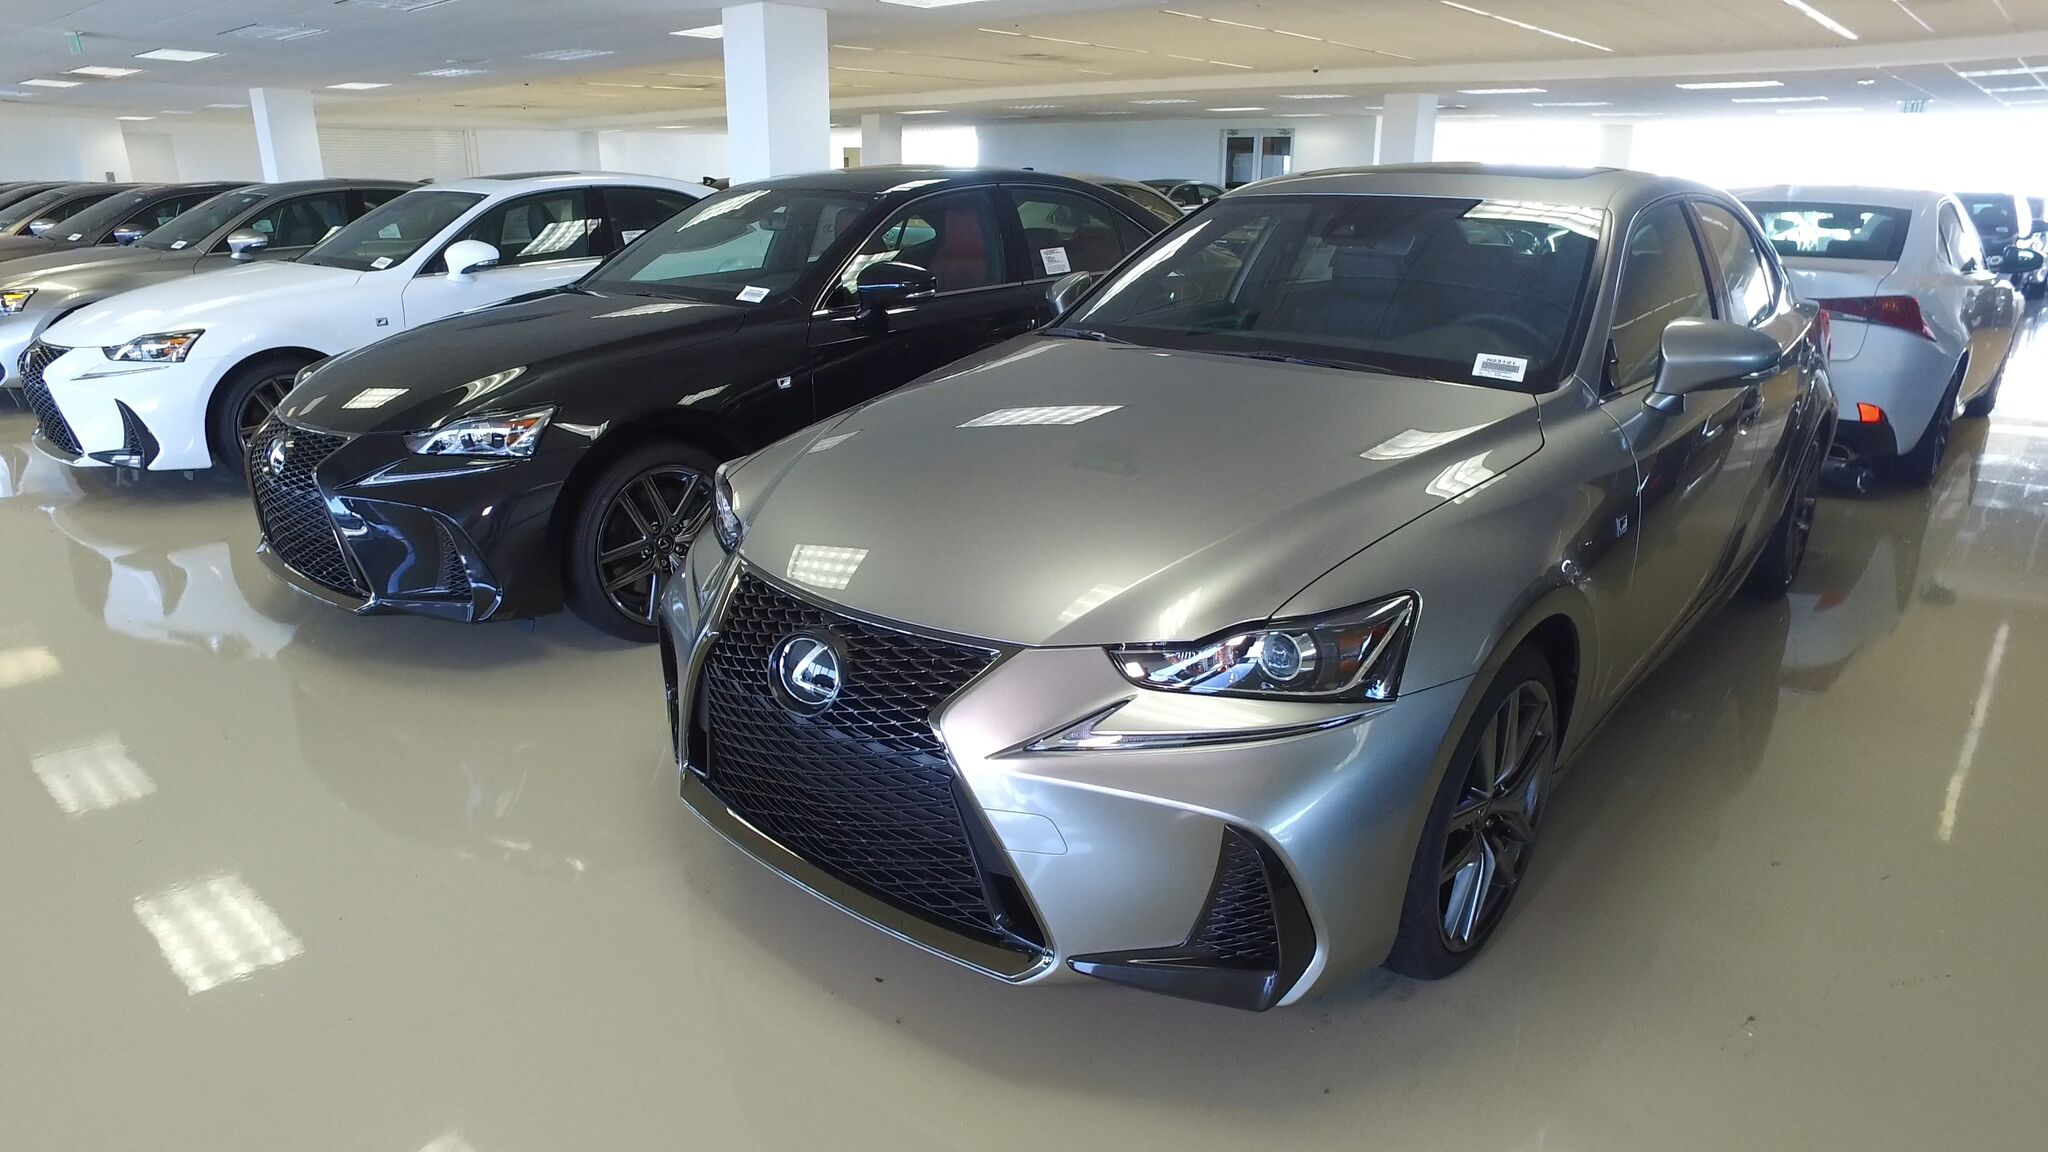 Lexus Of Kendall New Lexus Dealership In Miami FL - Lexus miami lease